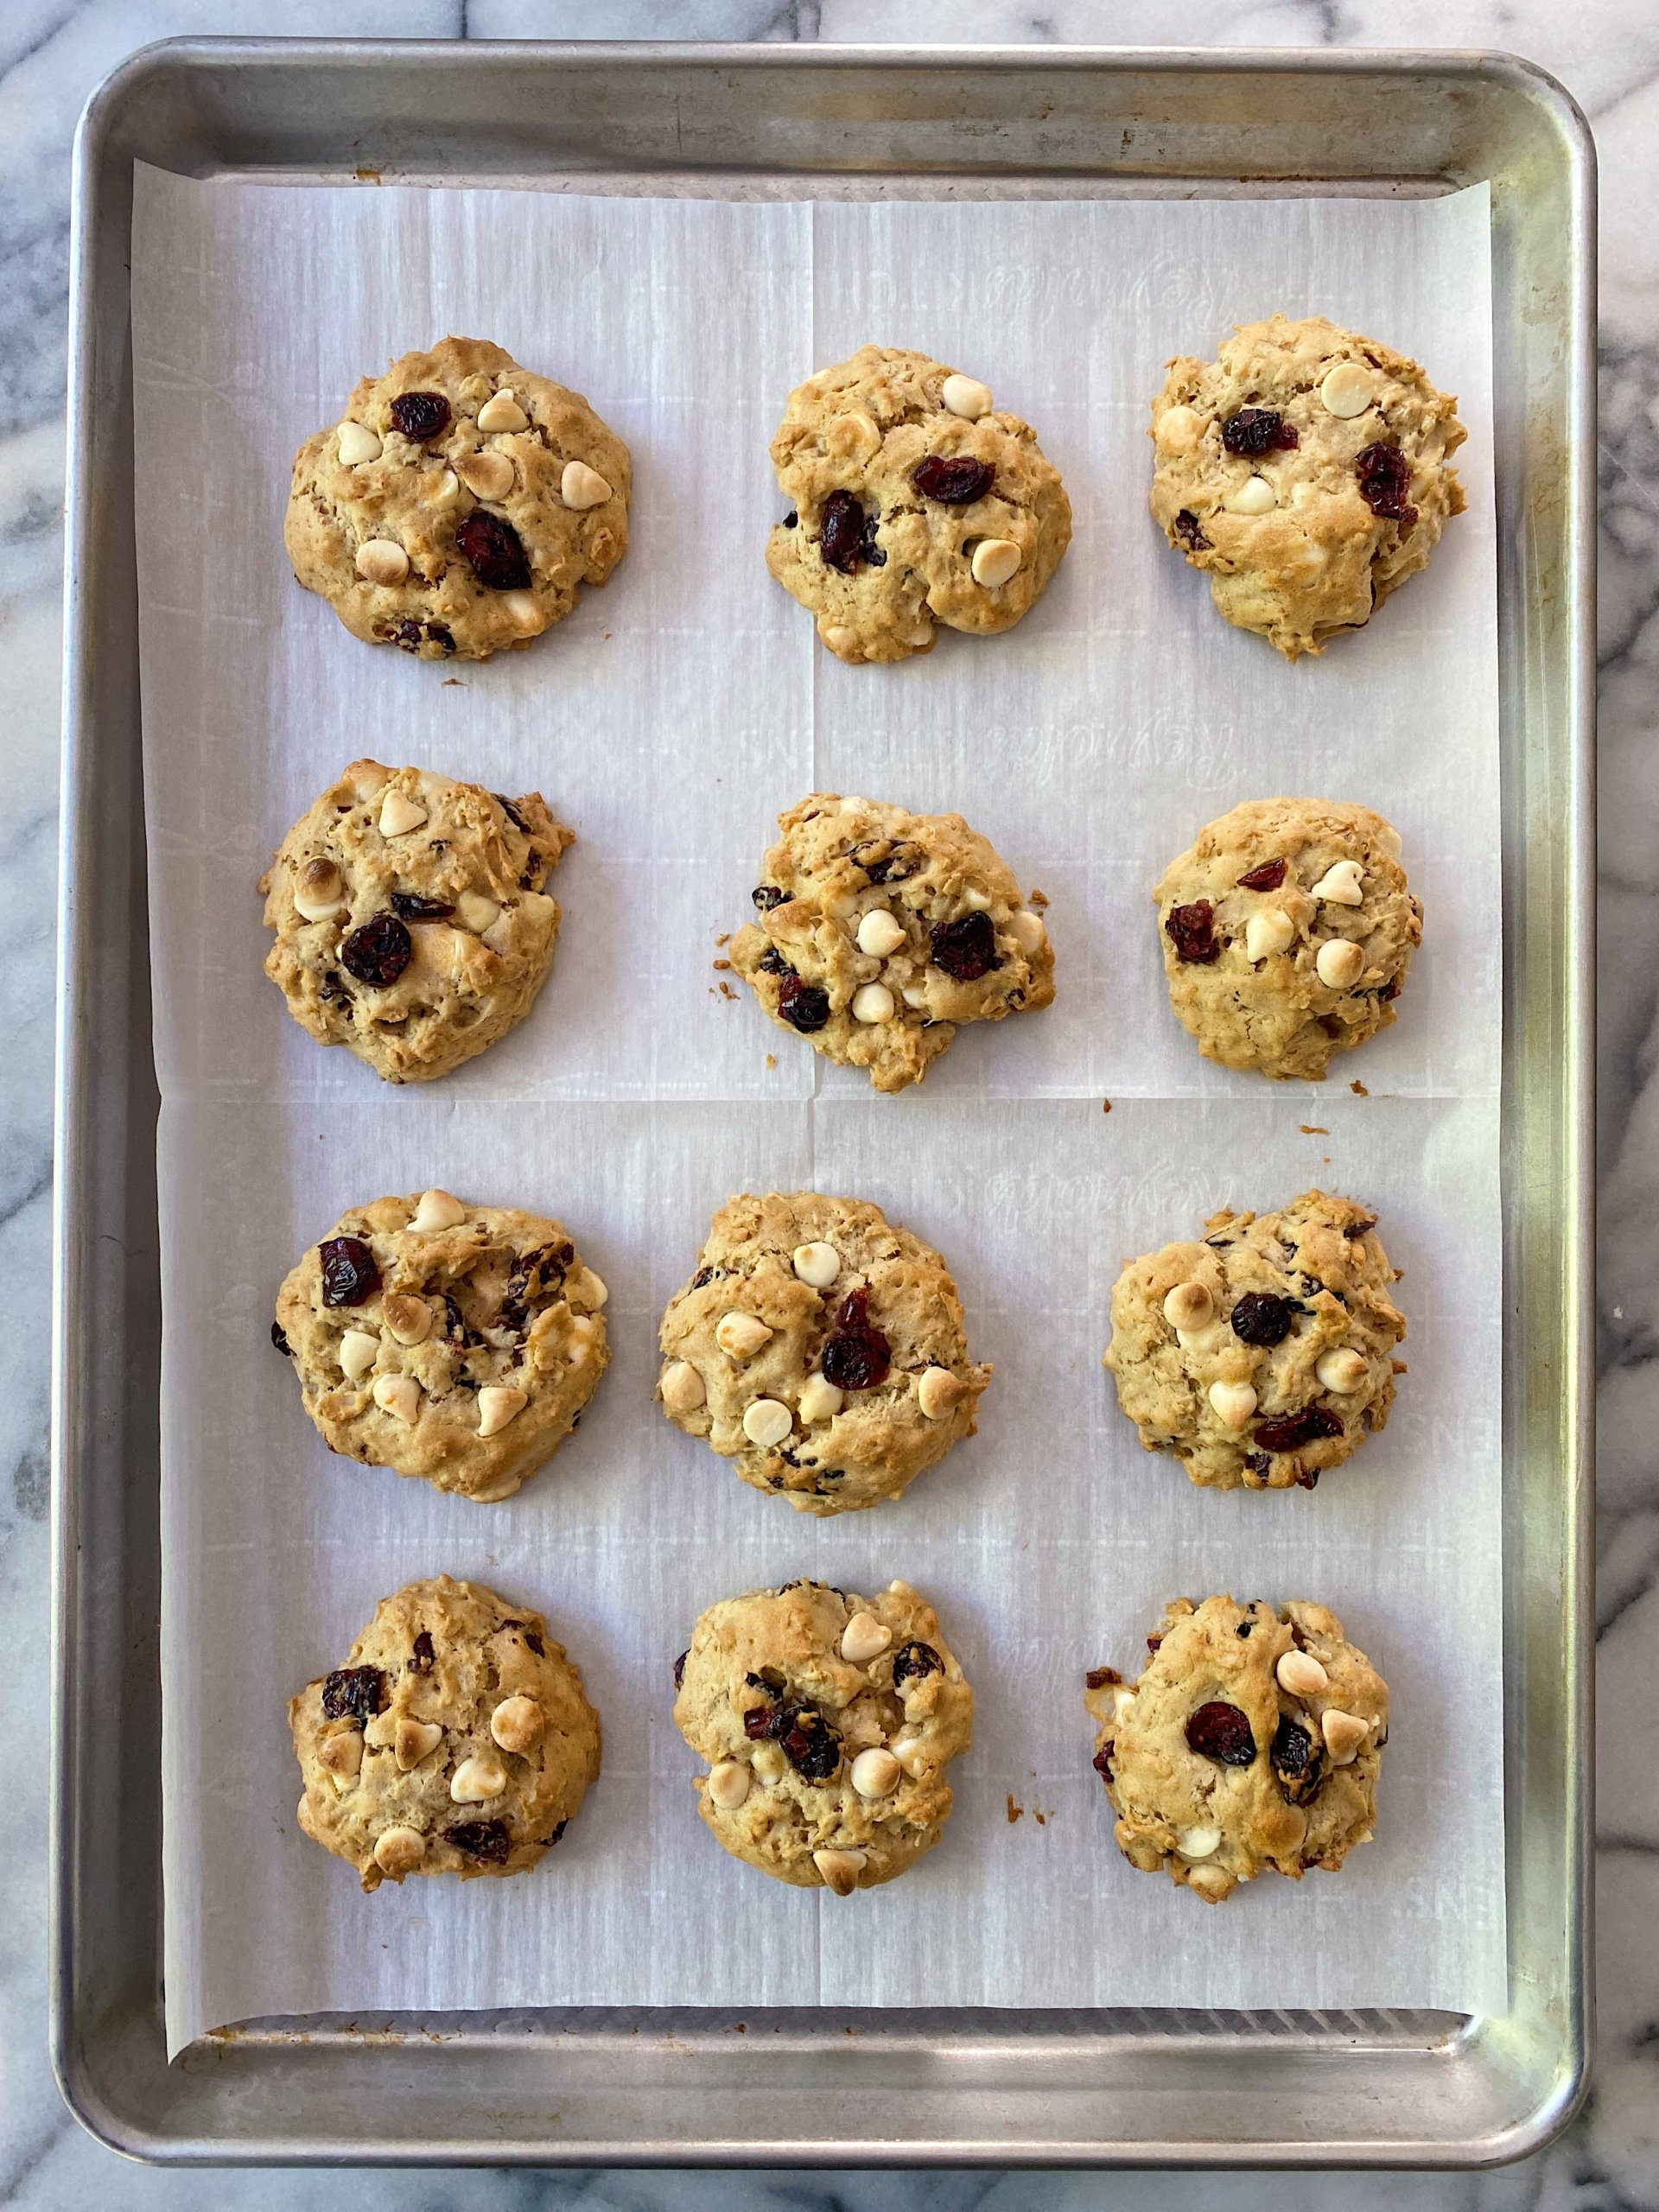 Oatmeal Cookie Cranberries white chocolate chips gluten free #glutenfreerecipes www.healthygffamily.com